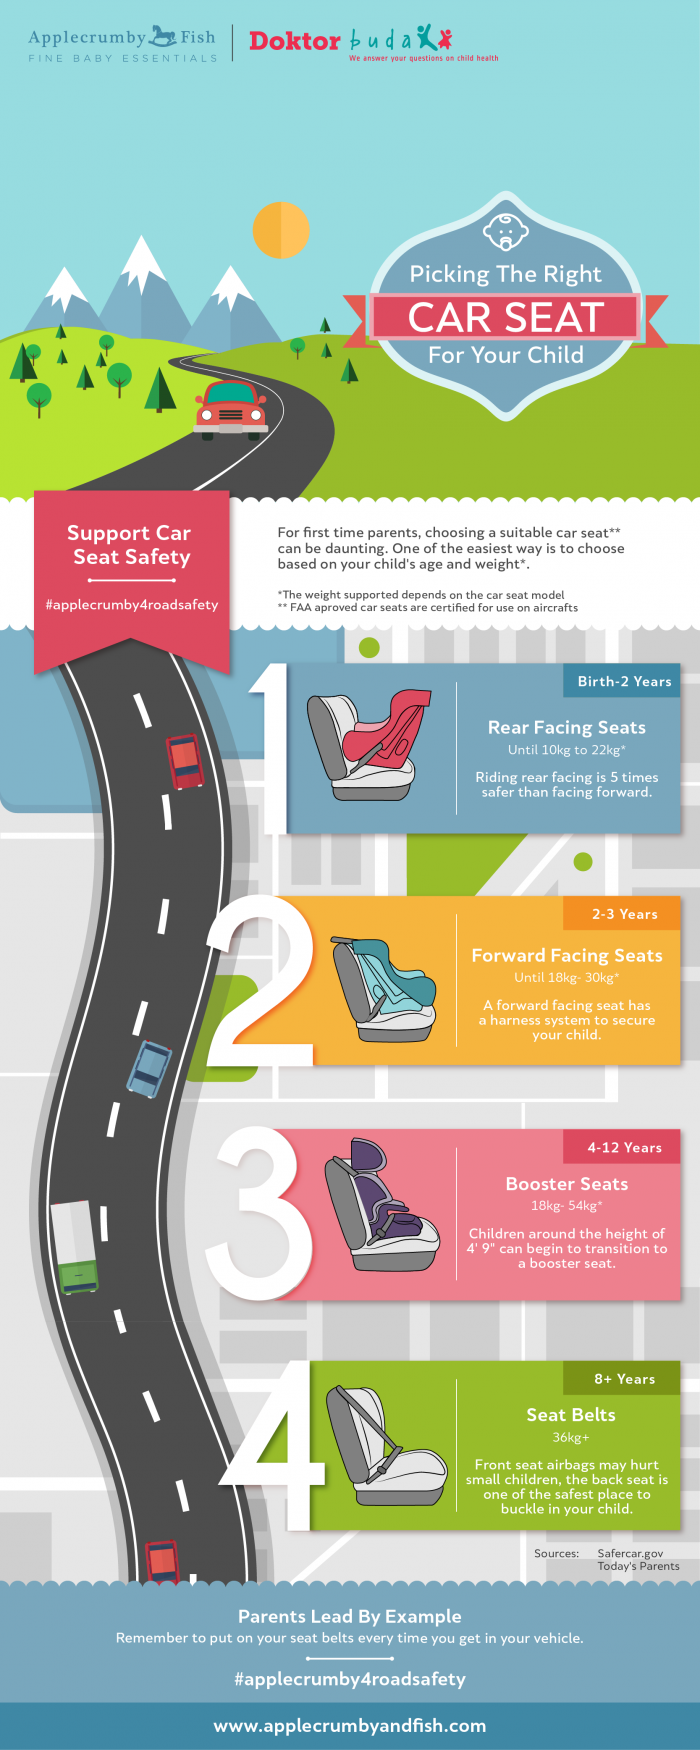 ApplecrumbyandFish and doktorbudak CarSeat Infographic